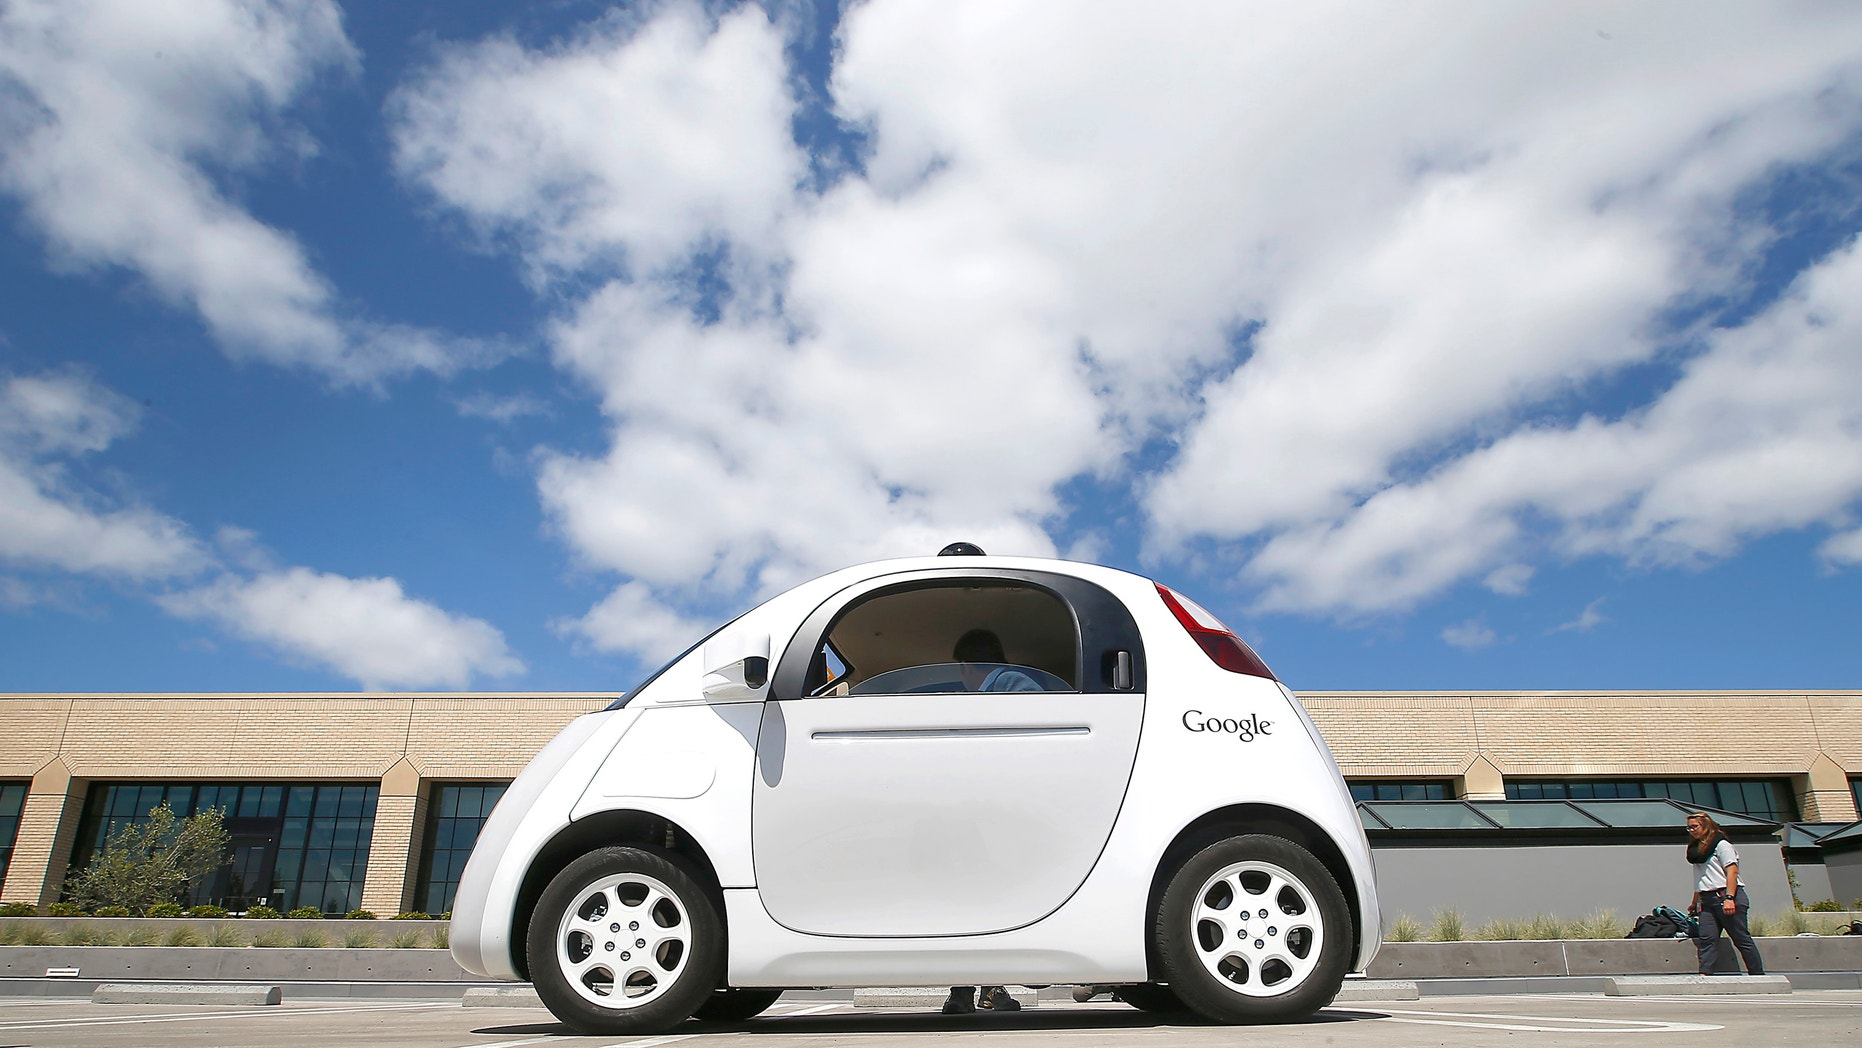 A Google car prototype at the Google campus in Mountain View, Calif.